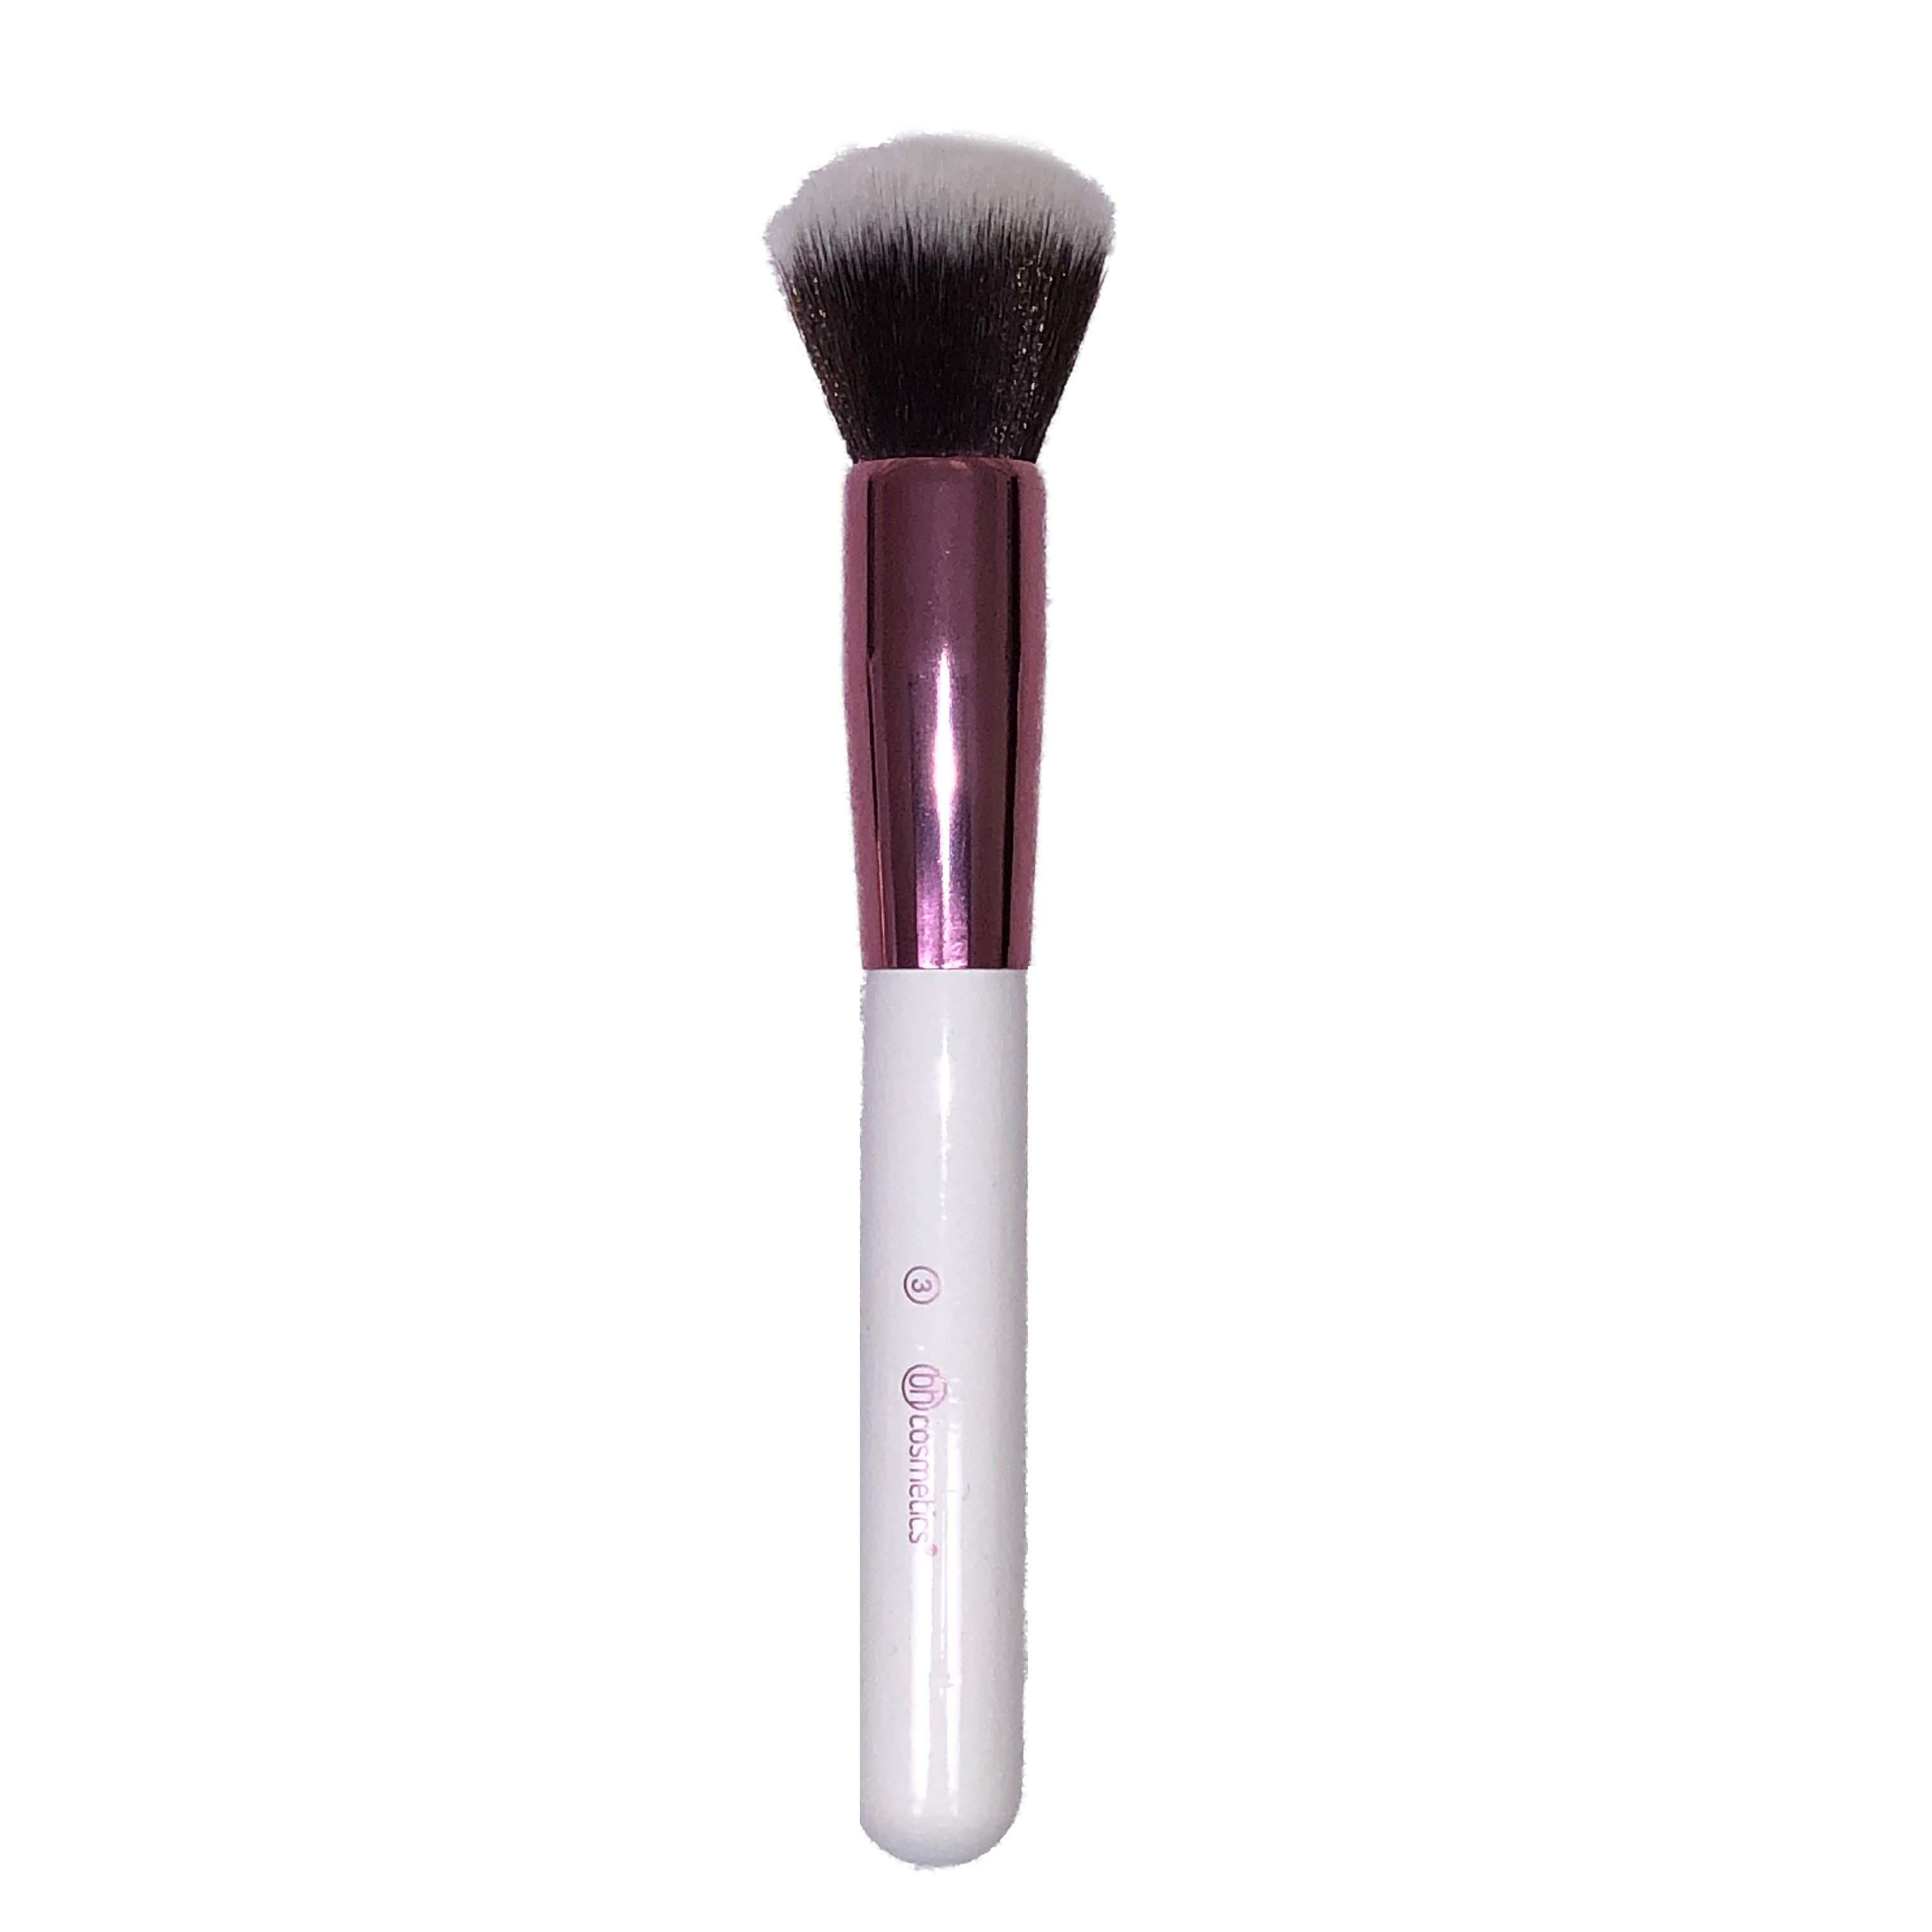 BH Cosmetics Rounded Full Face Brush White